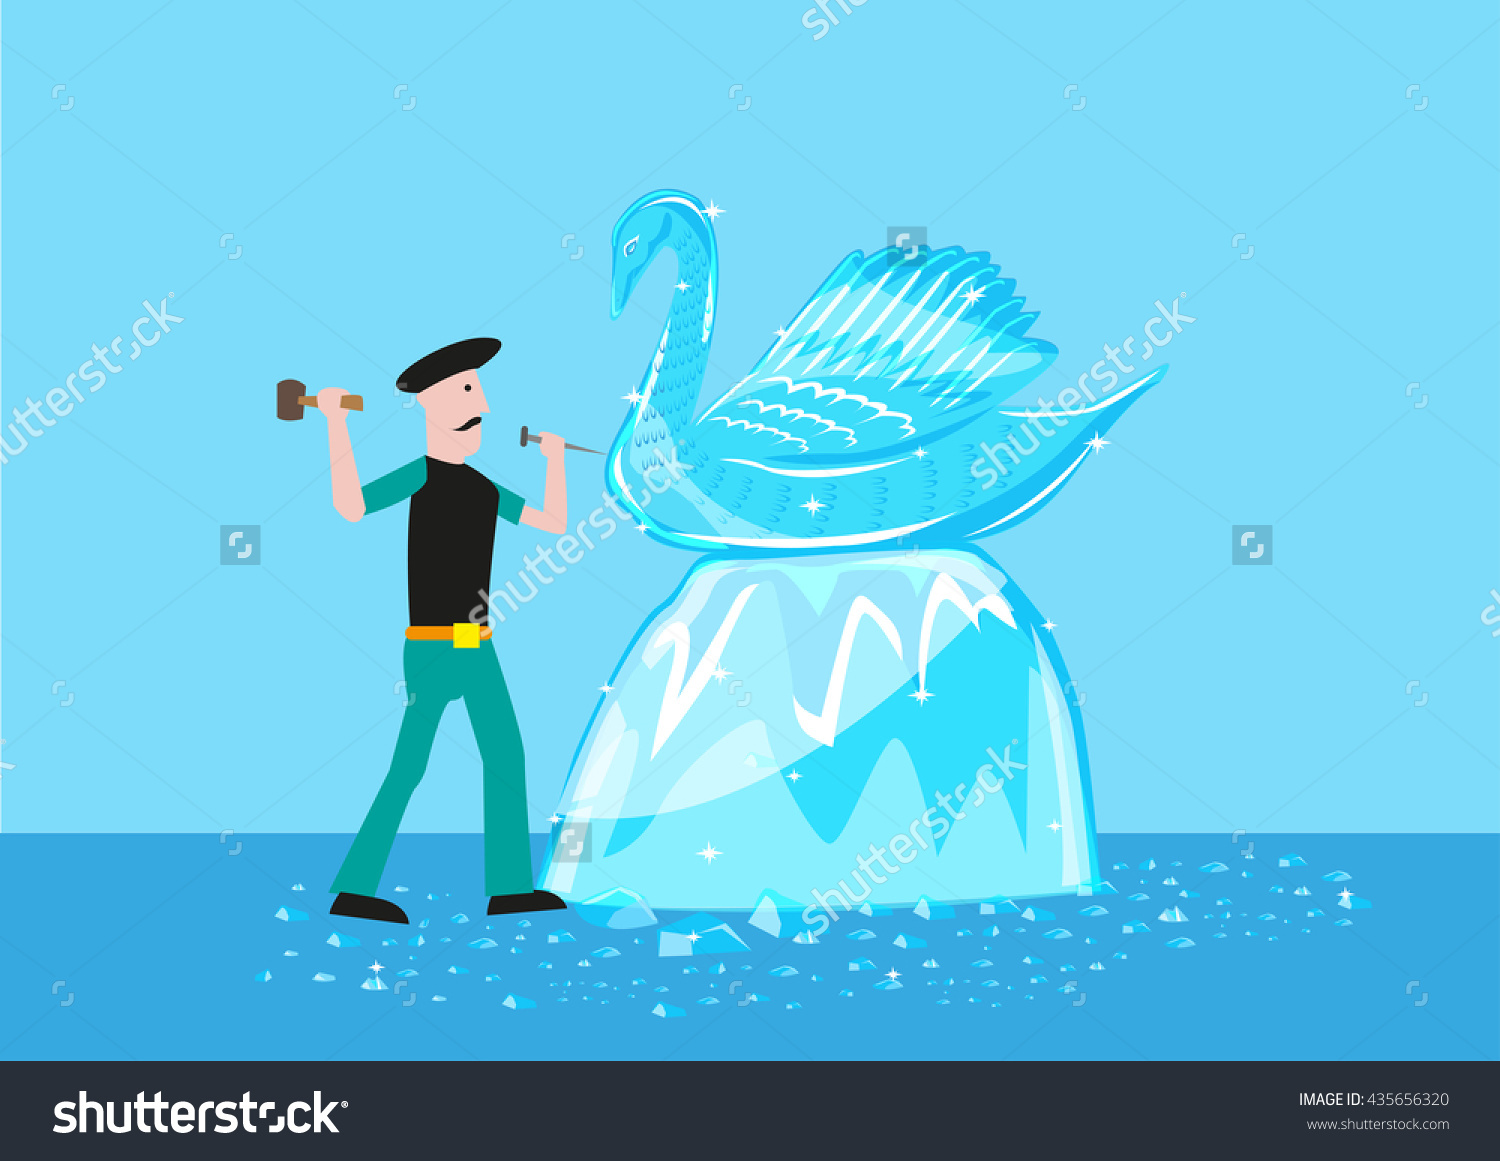 An Artist Sculpts A Swan Form Out Of Ice Or Crystal Material.